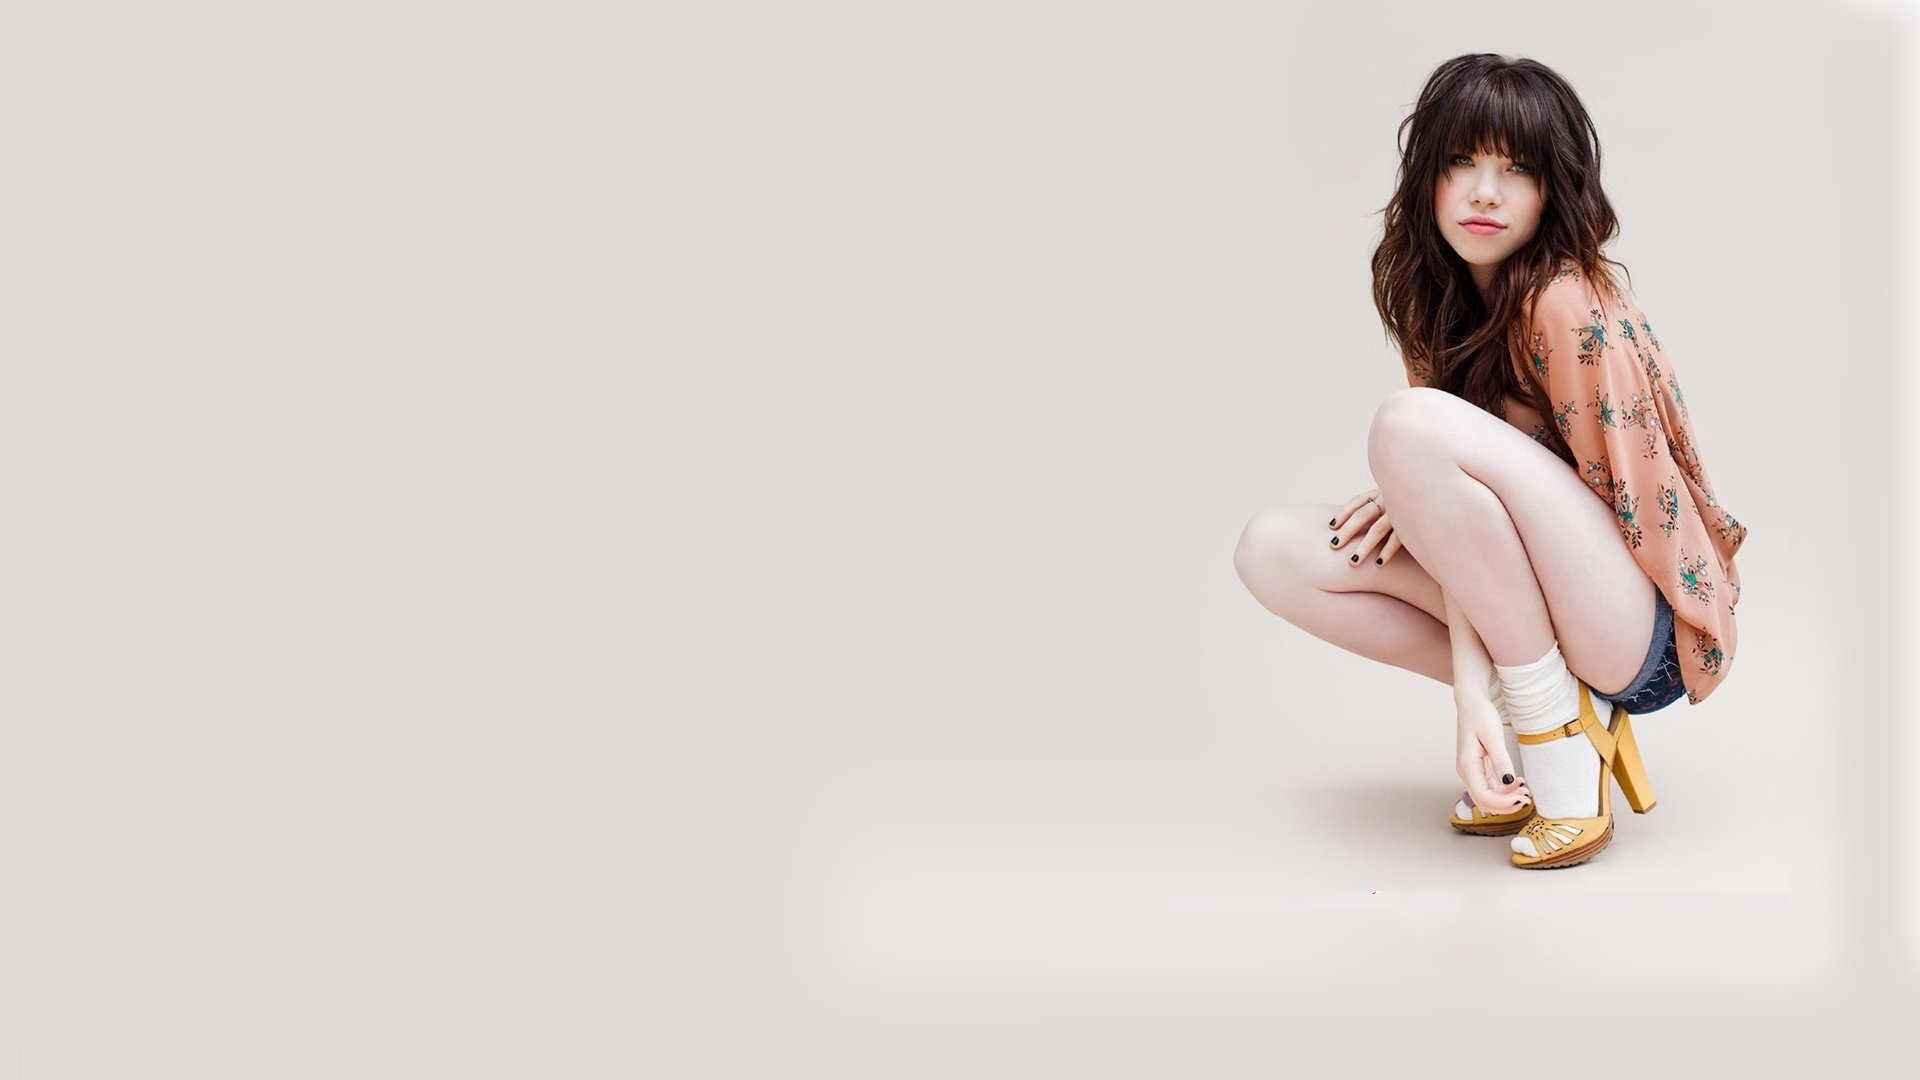 10 New Carly Rae Jepsen Wallpaper FULL HD 1920×1080 For PC Desktop